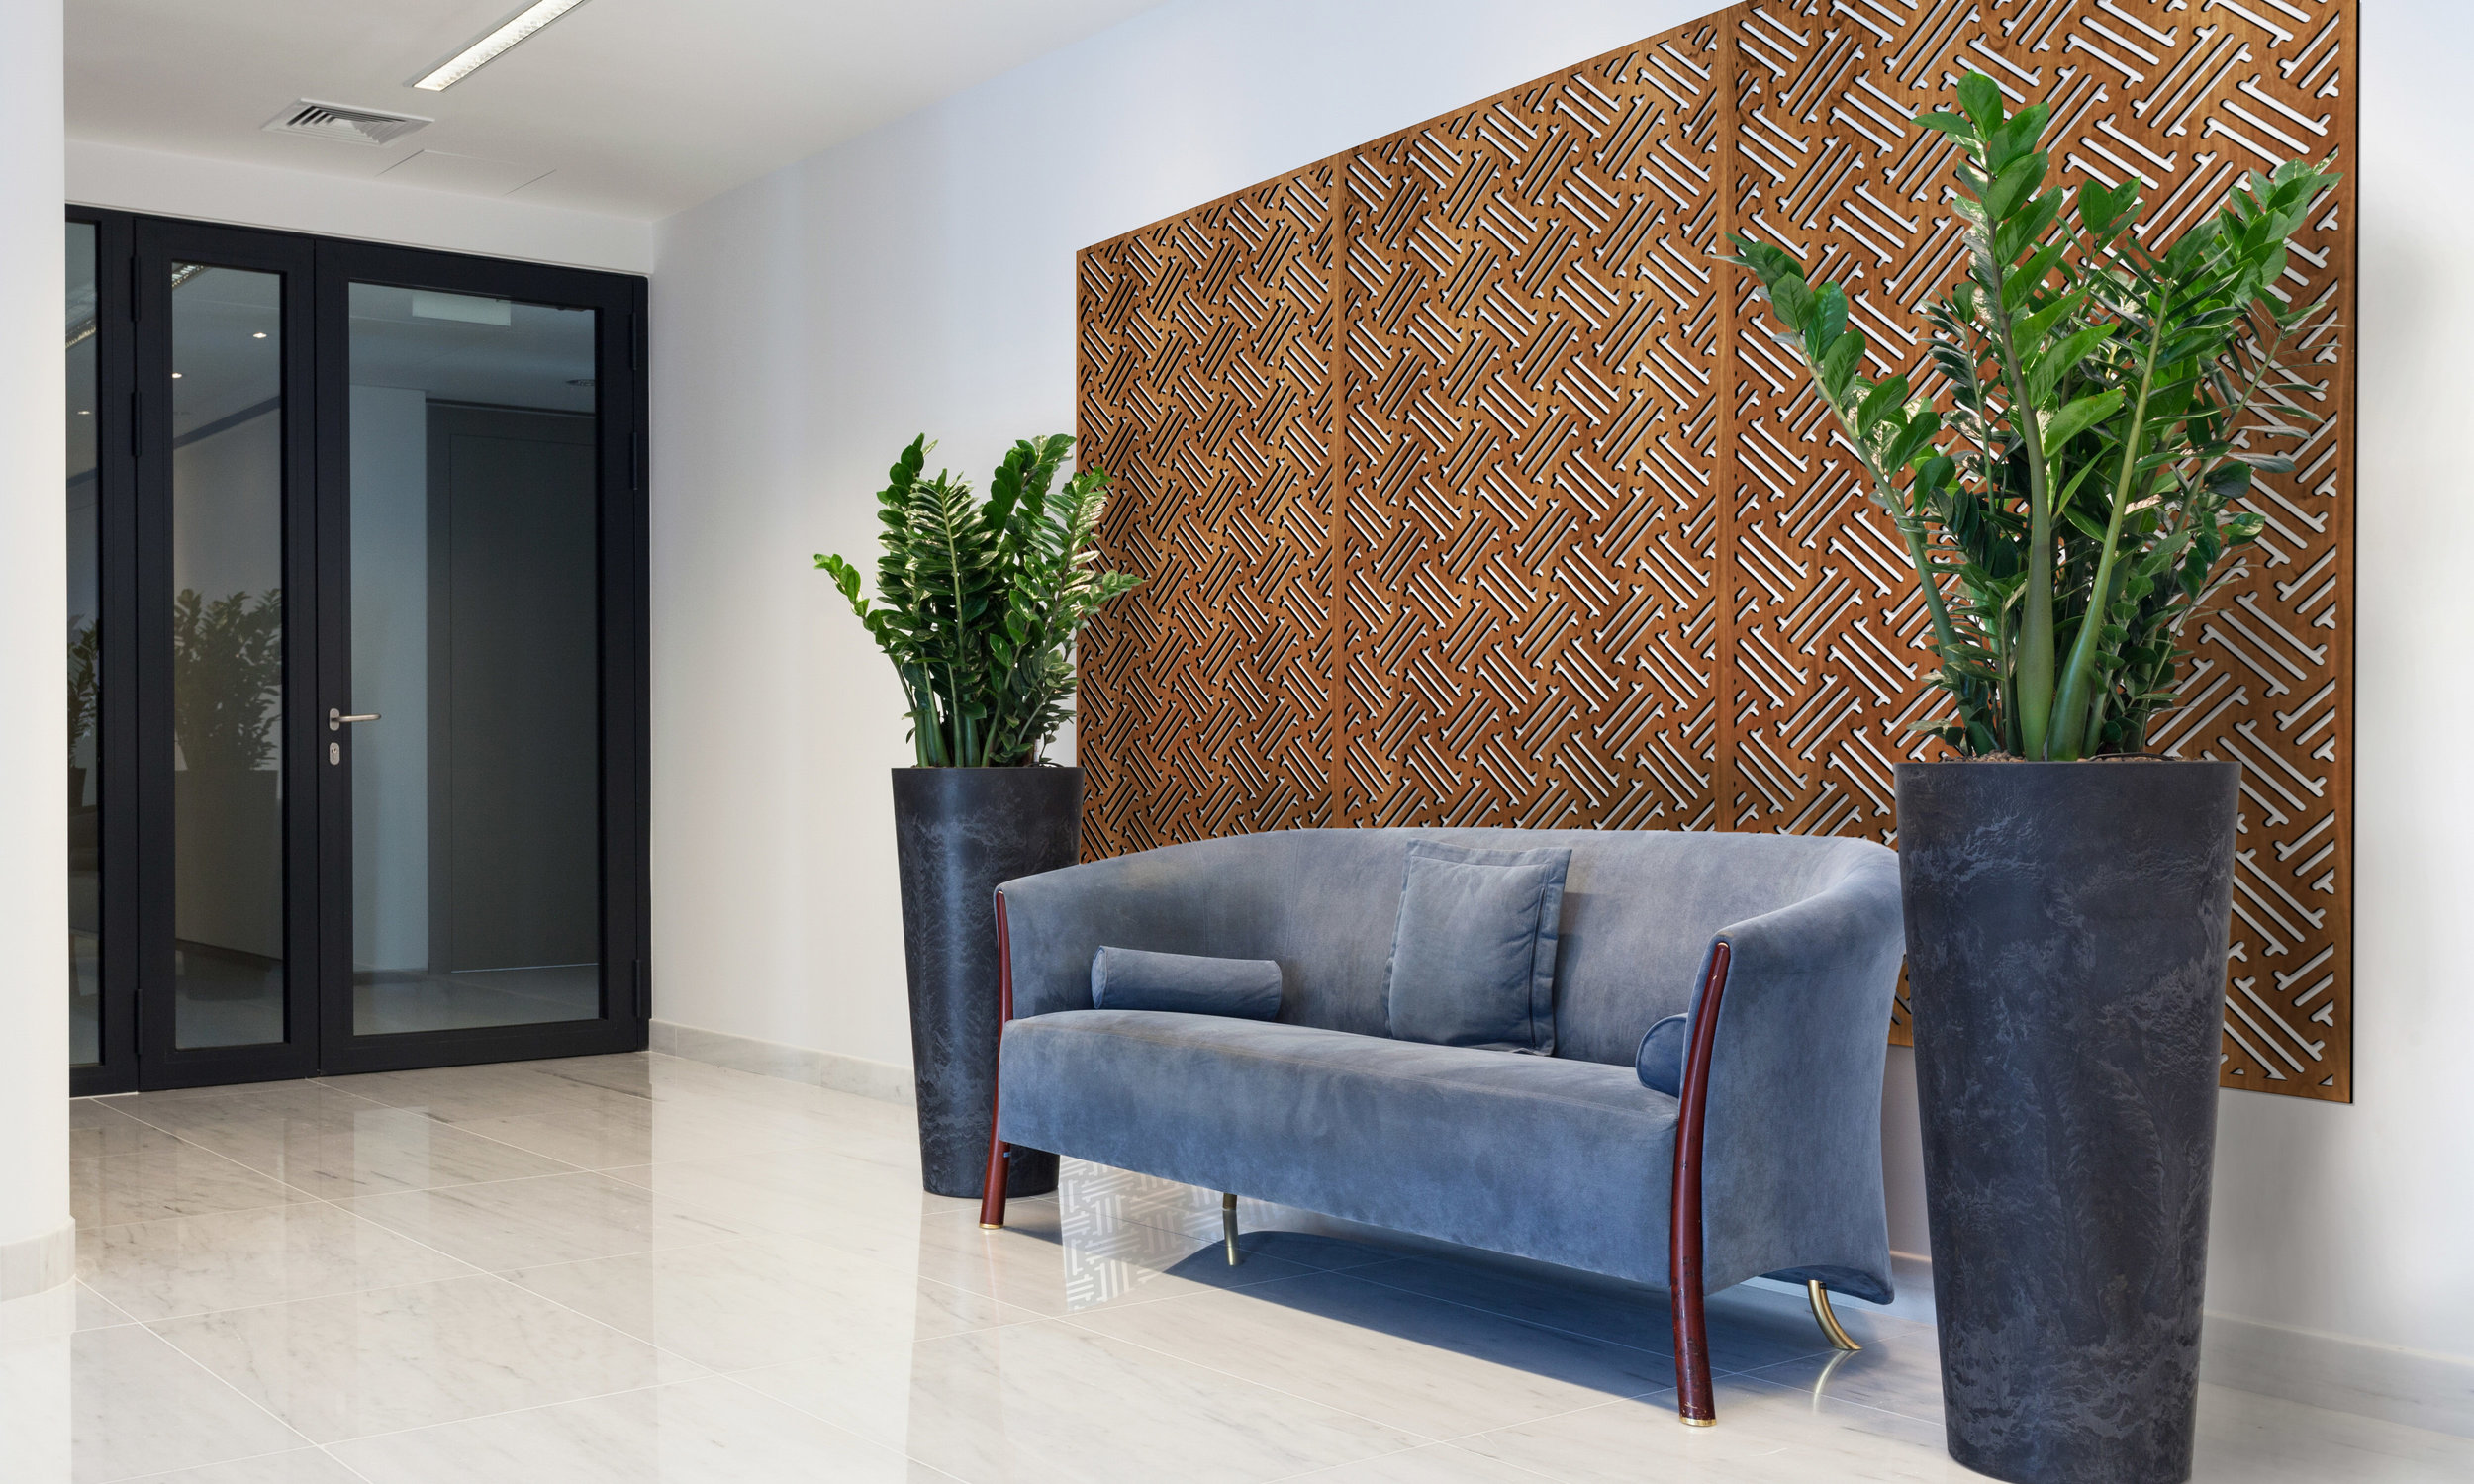 Installation Rendering A   Hawaiian decorative office wall panel - shown in Cherry